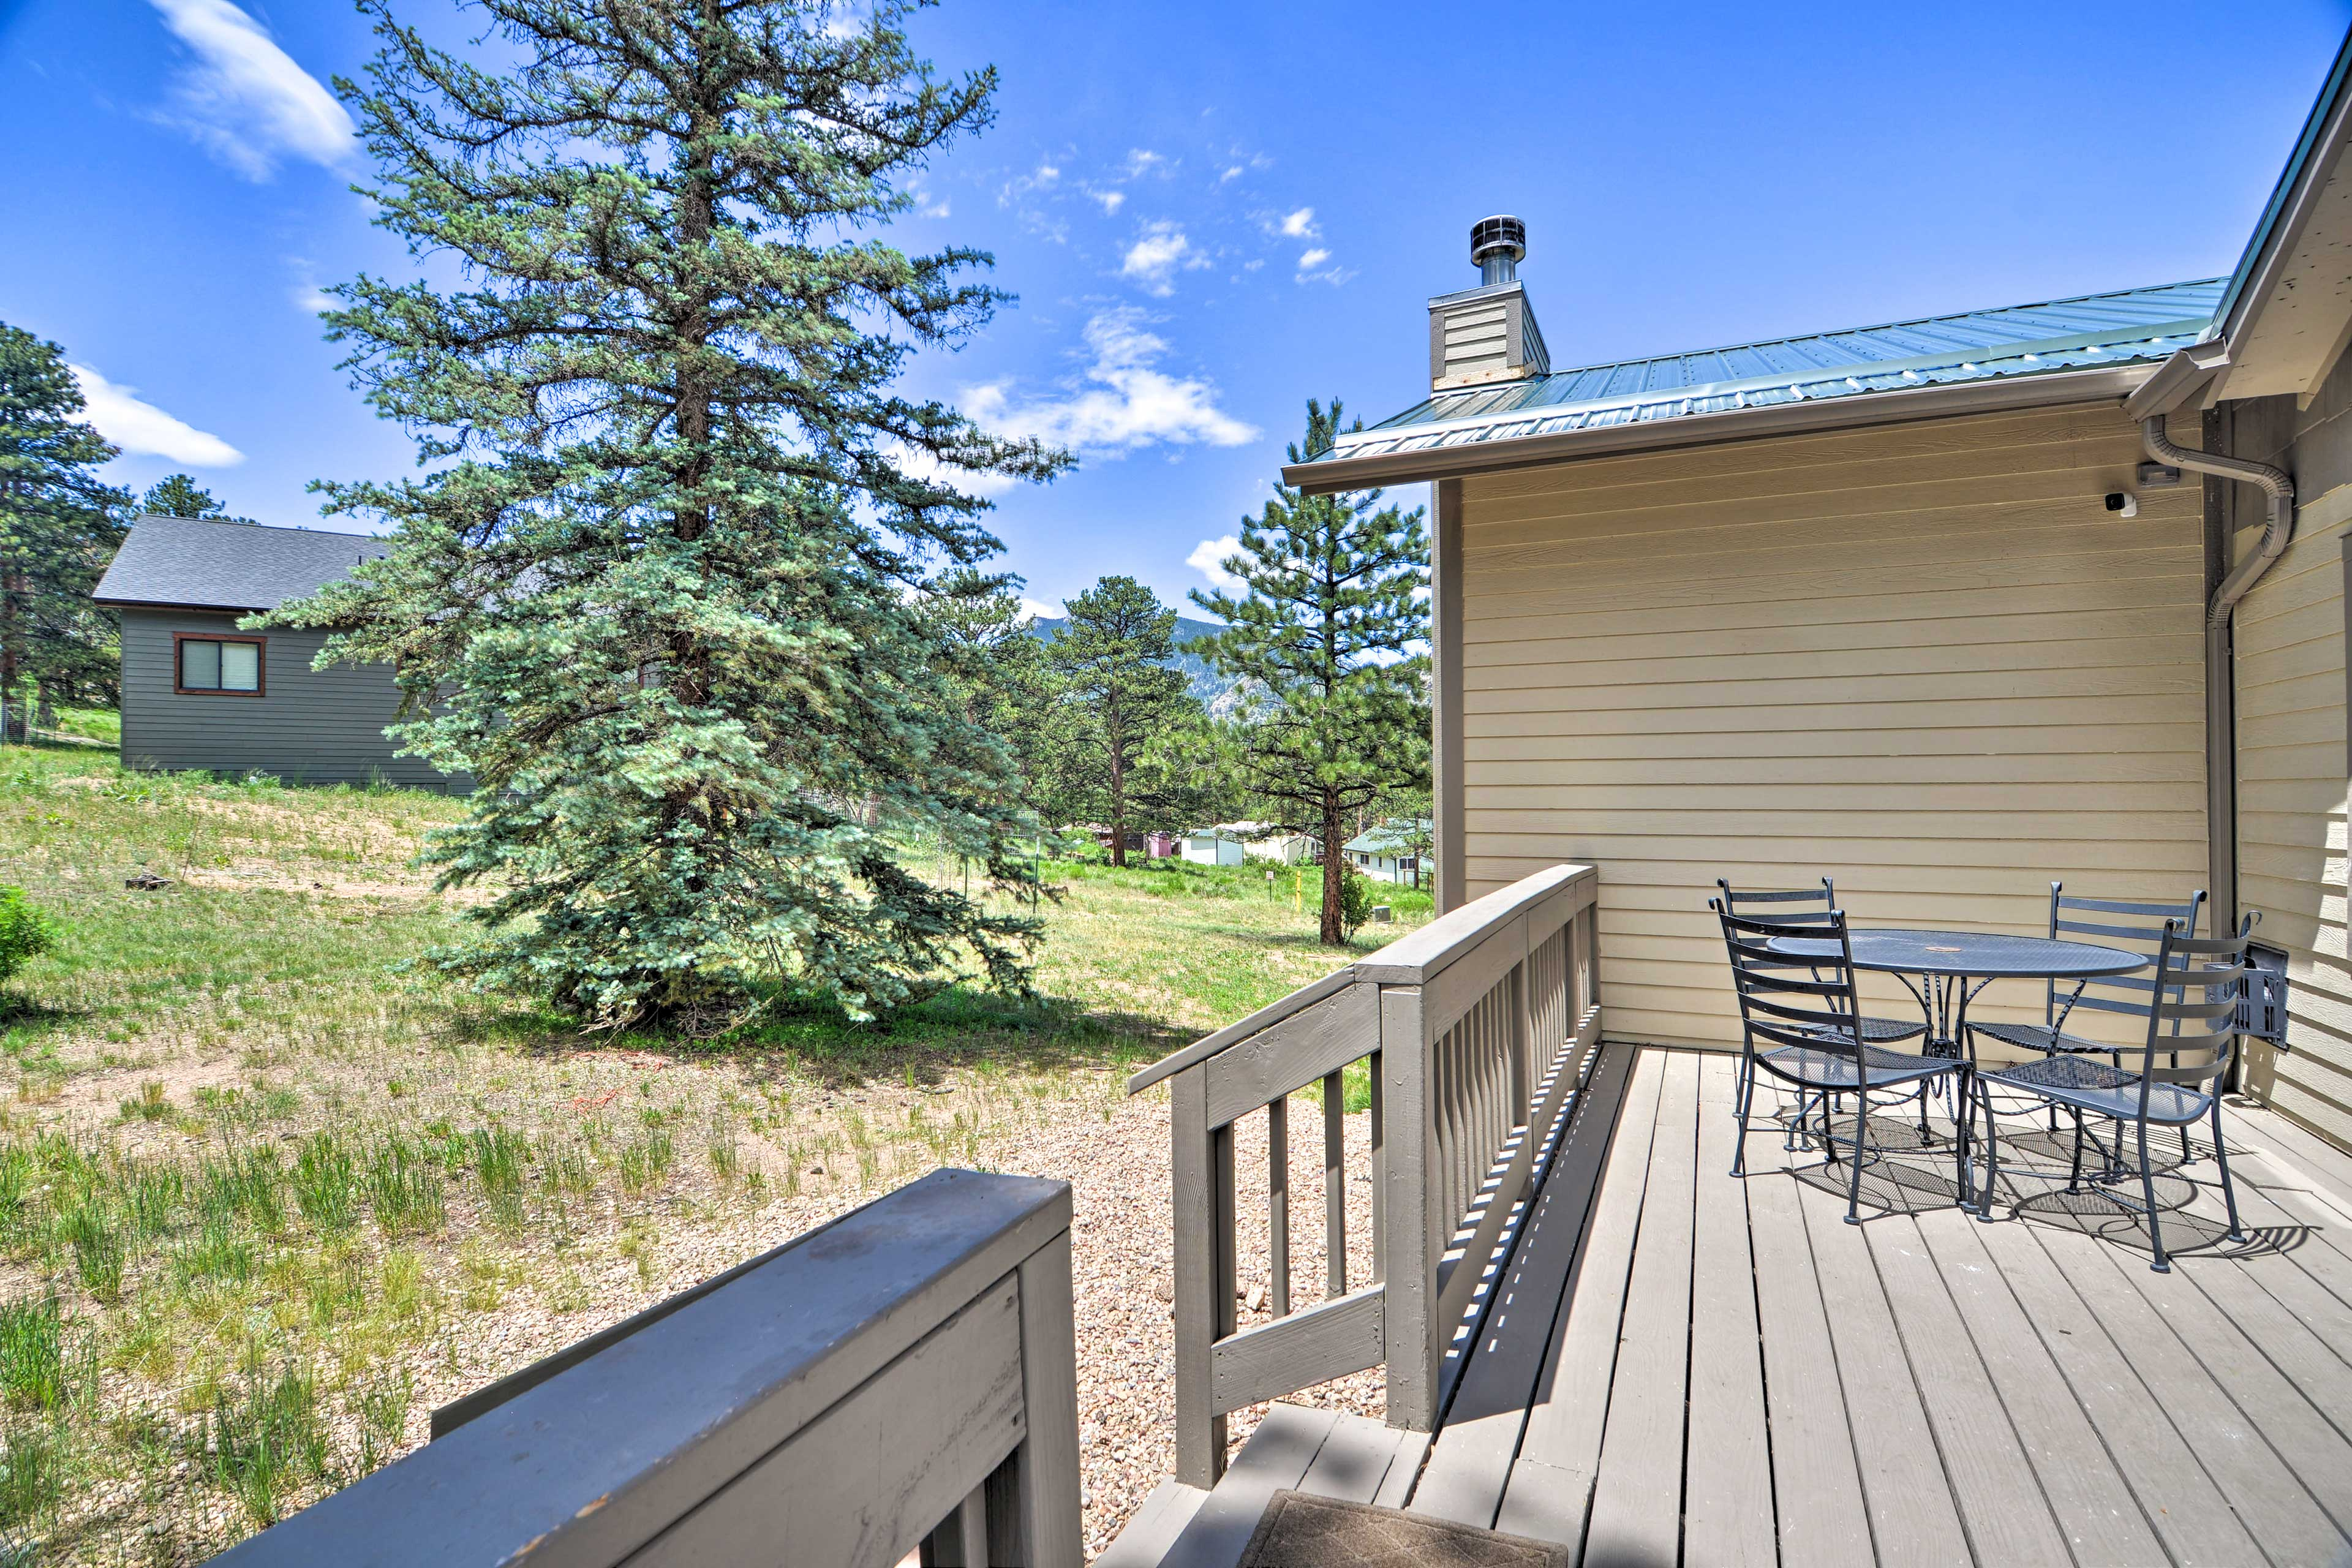 Private Deck   Outdoor Dining Area